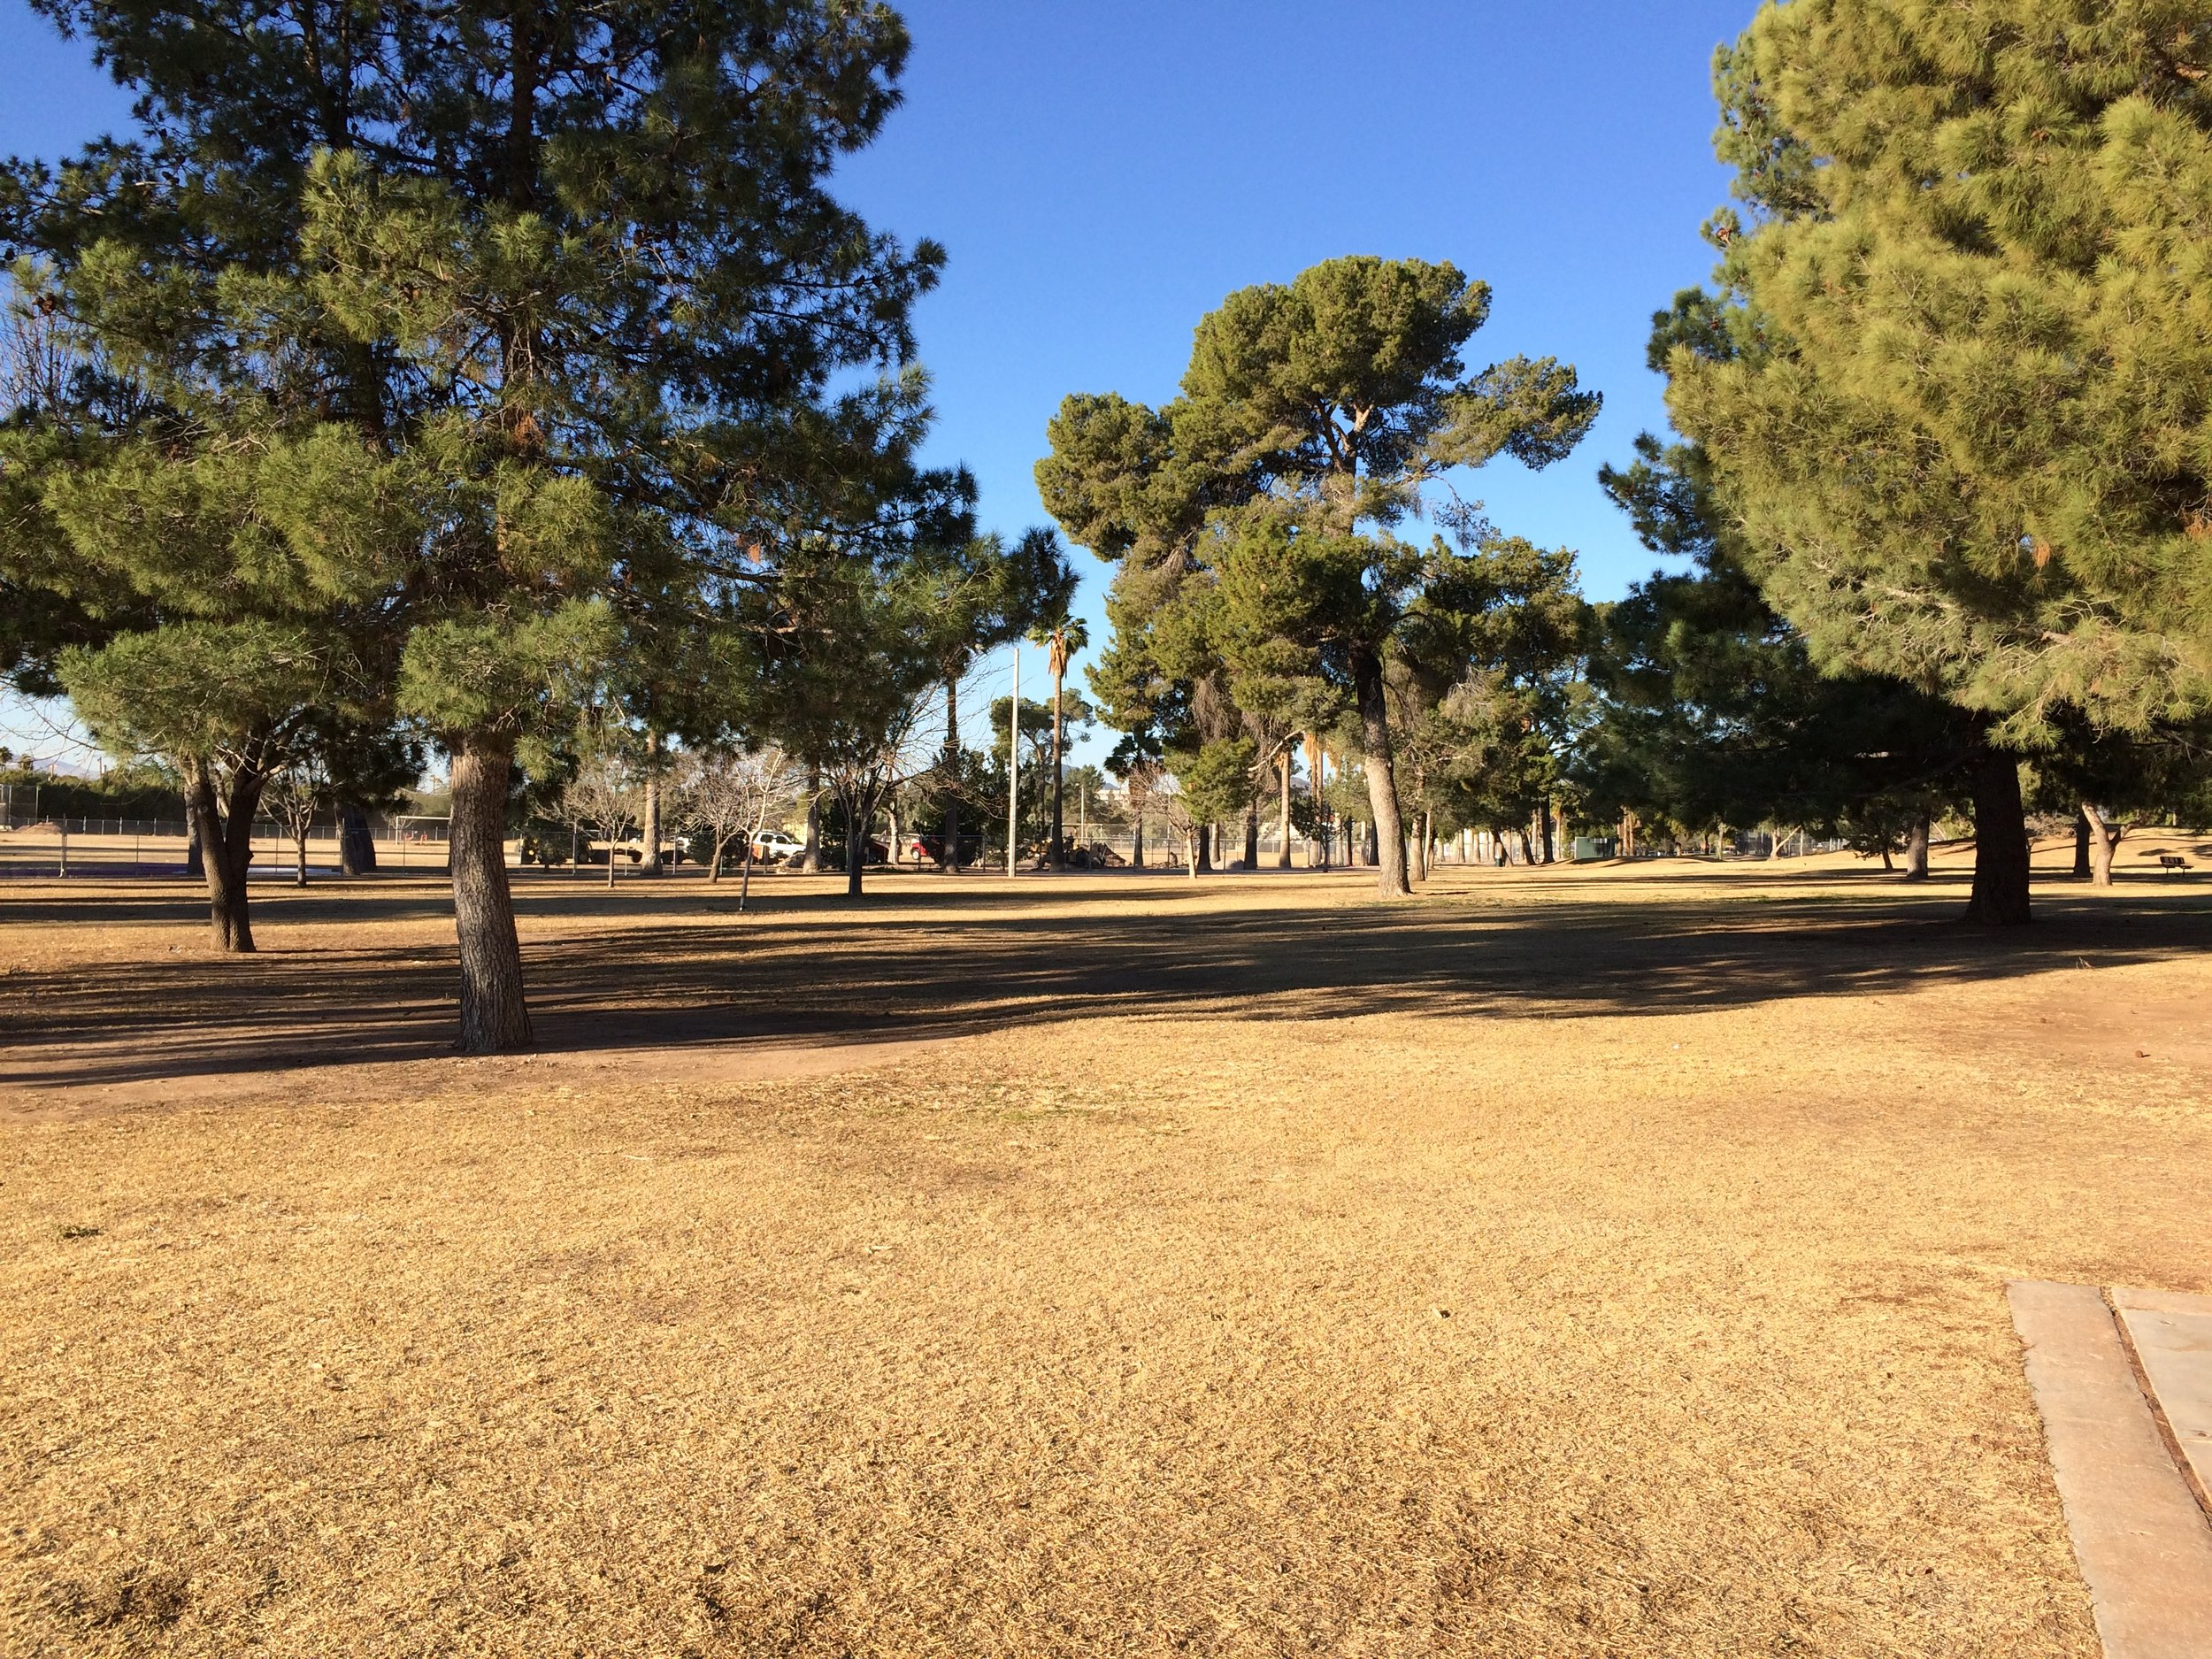 One of many parks in Tucson great for running